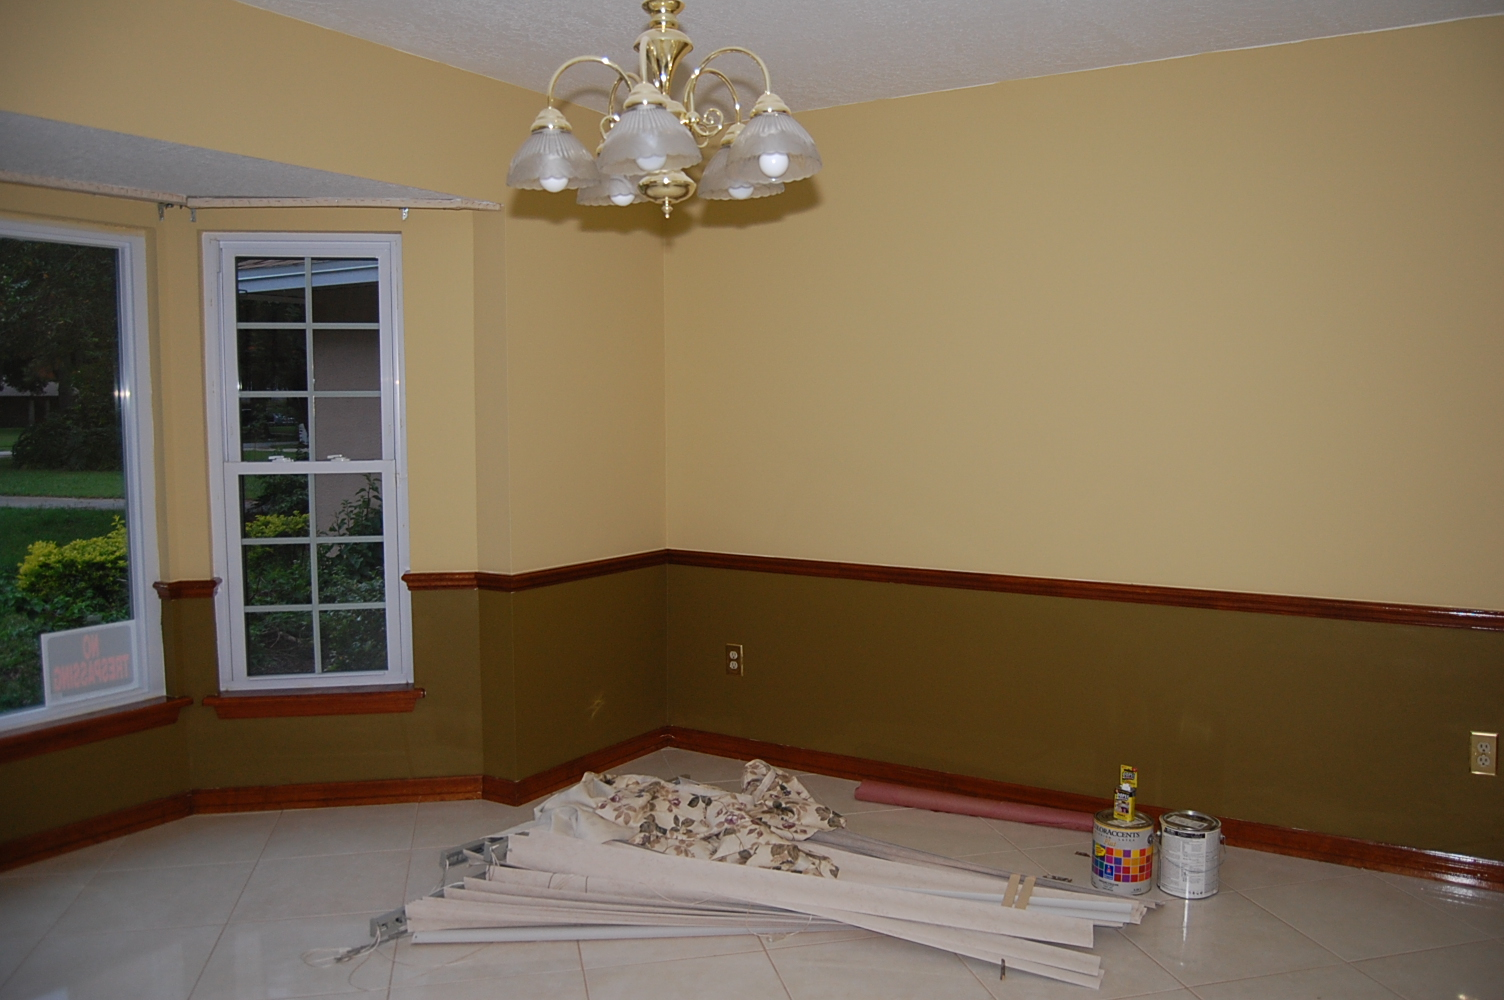 Remarkable Crown Molding and Ceiling Color 1504 x 1000 · 682 kB · jpeg